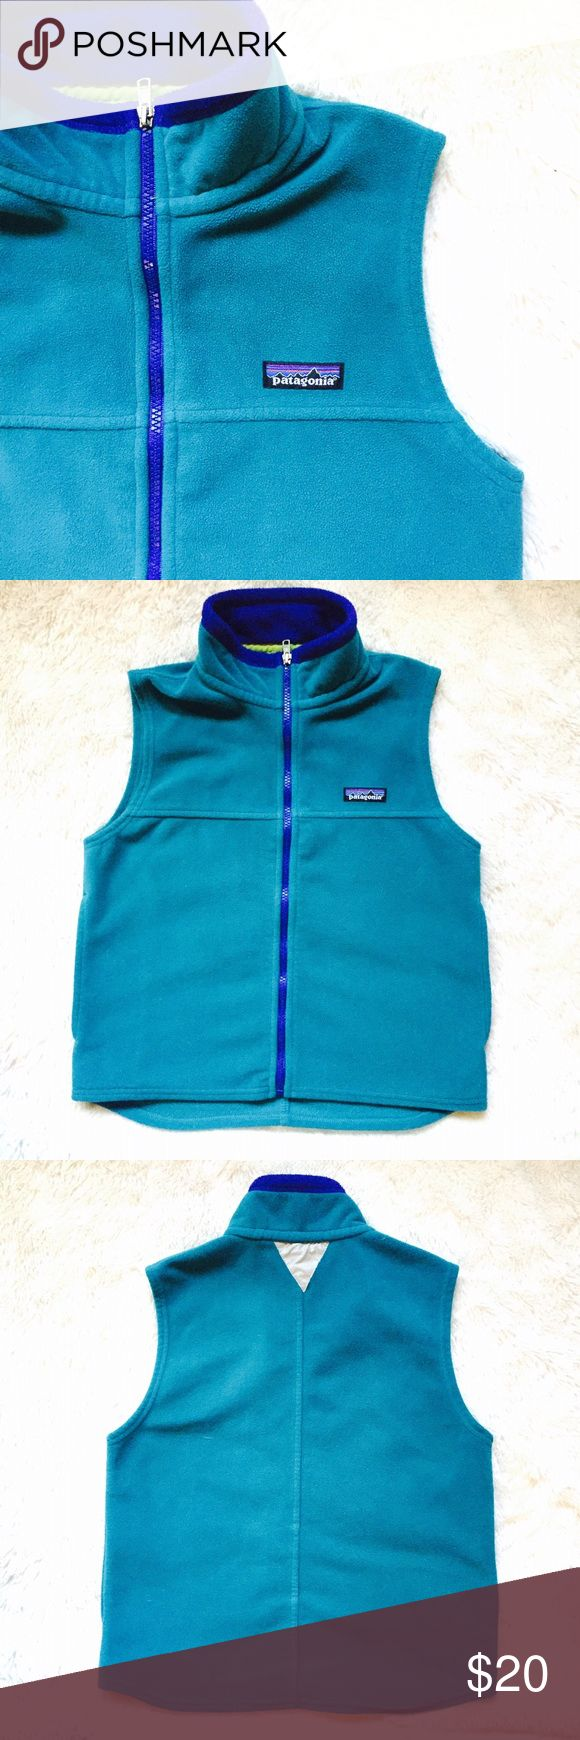 "🆕 Kids Patagonia Vest 7/8 Great fleece vest by Patagonia I believe the style is synchilla. In a gorgeous aqua blue turquoise color with a dark blue trim. Would look great on a boy or a girl. Kids size small S 7/8. In excellent preowned condition ready to wear. Measures approximately 17.5"" across the chest and 20"" in length. Patagonia Jackets & Coats Vests"